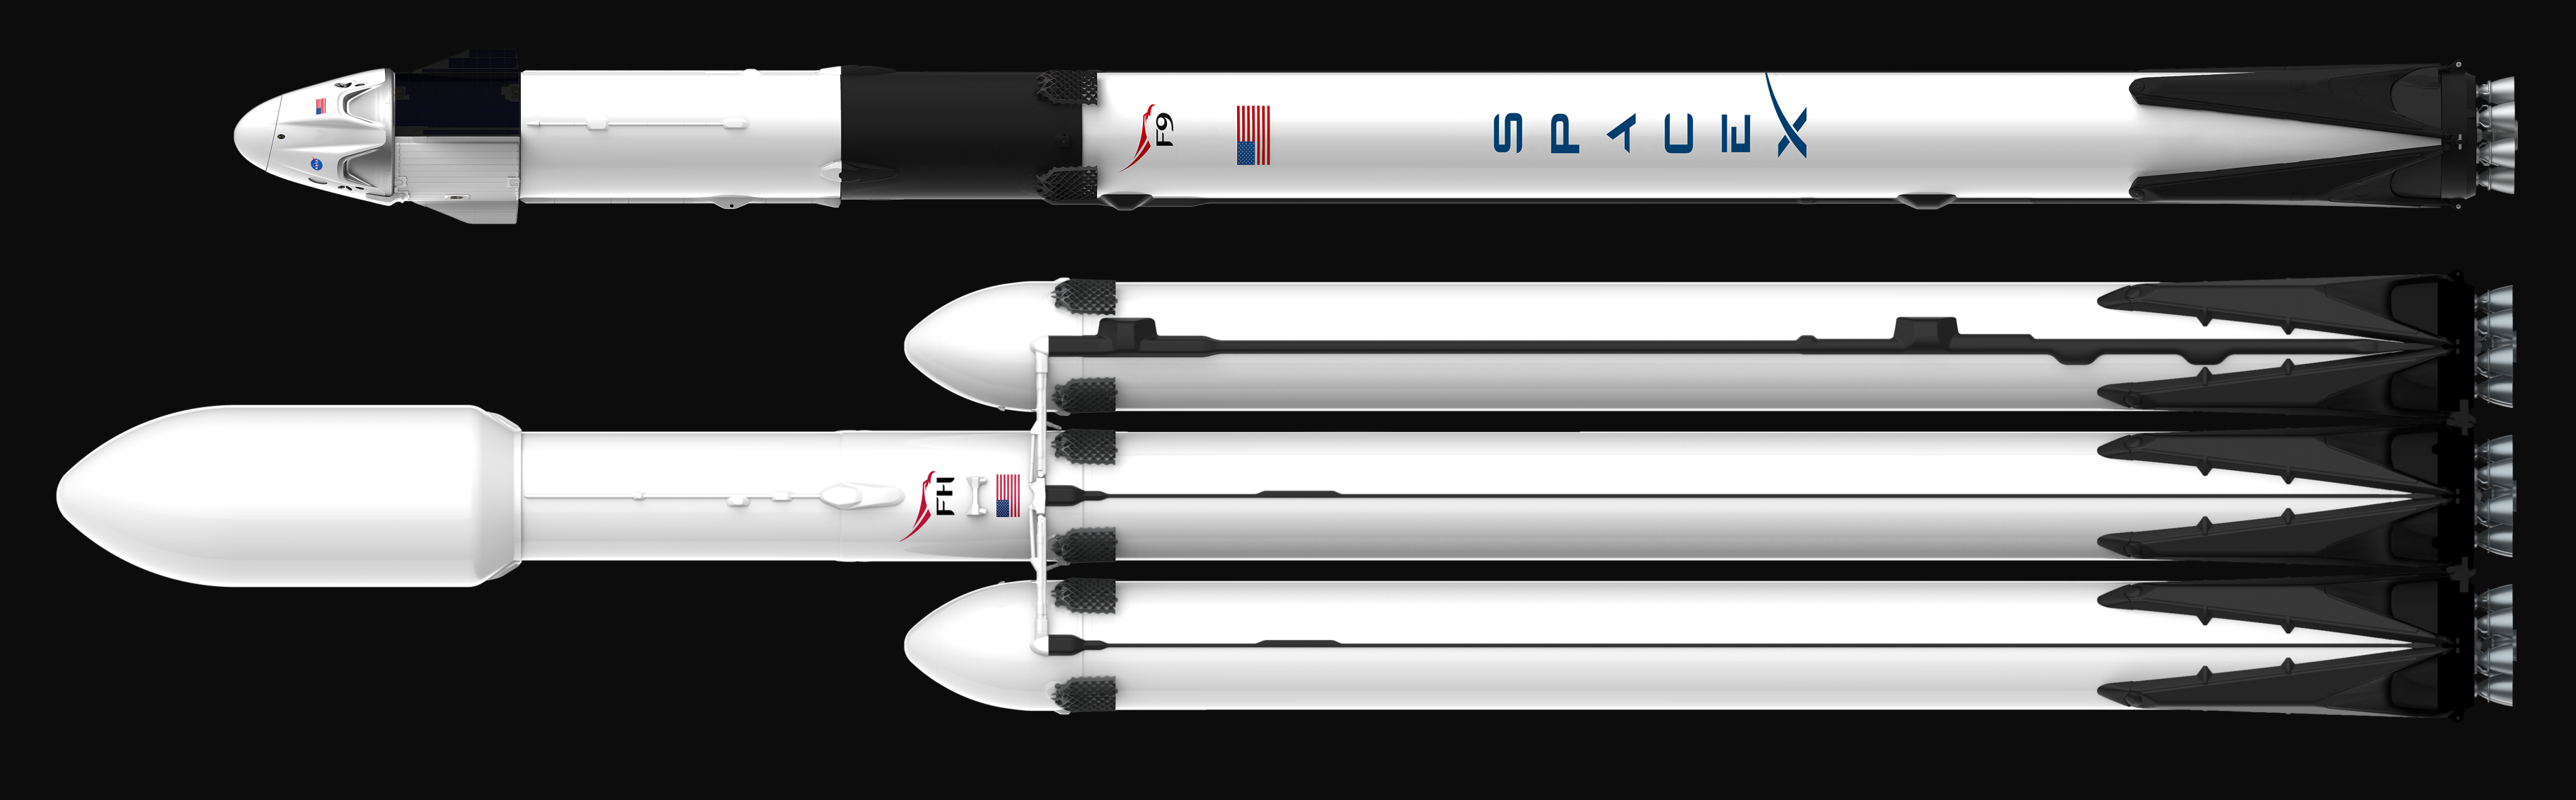 Falcon 9 Block 5 Dragon 2 and Falcon Heavy official render (SpaceX) 1 (c)